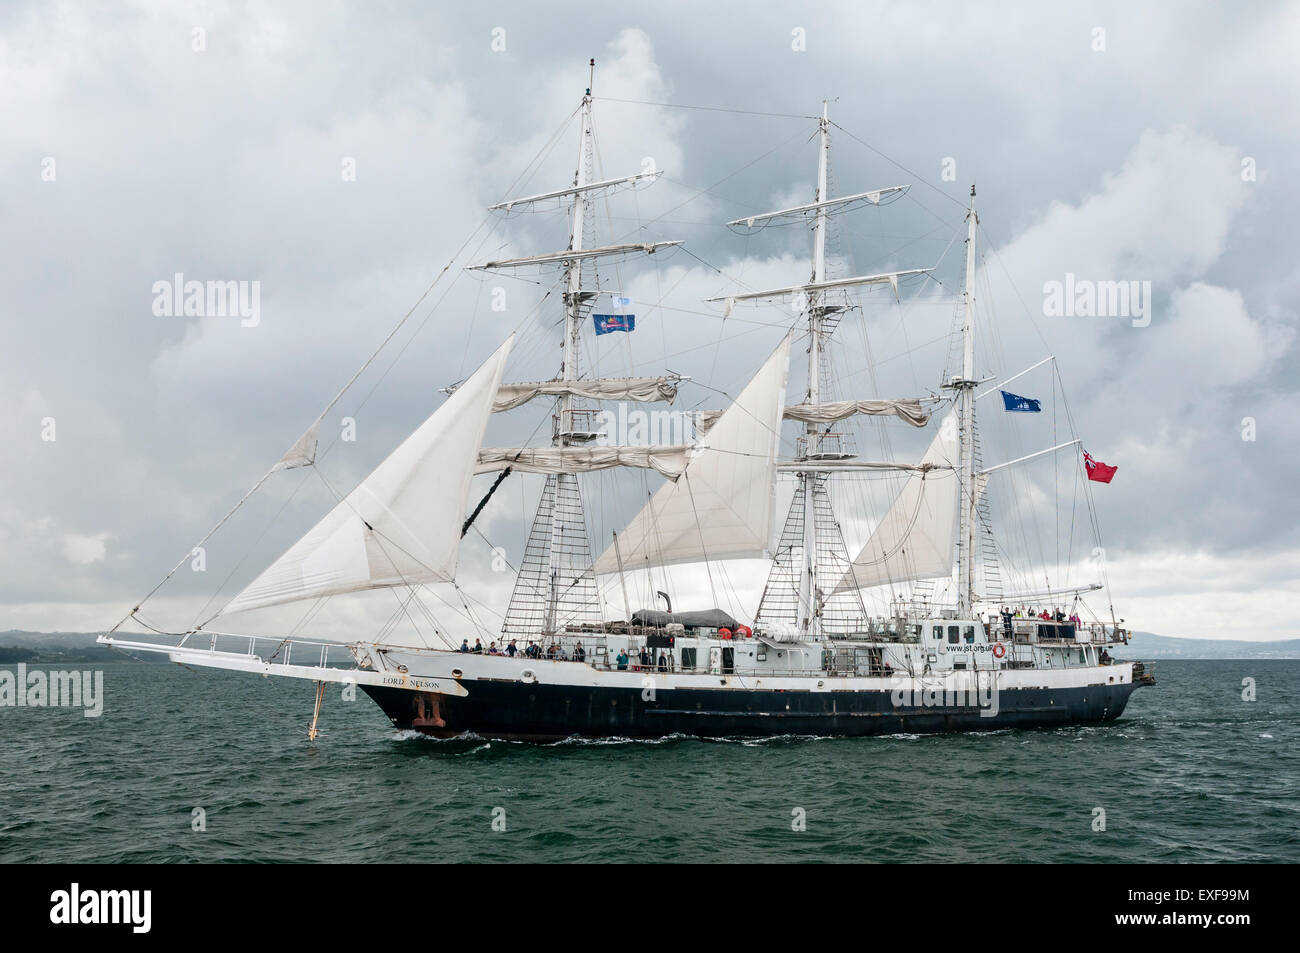 The Lord Nelson ship leaves Belfast during the start of the 2015 Tall Ships race - Stock Image